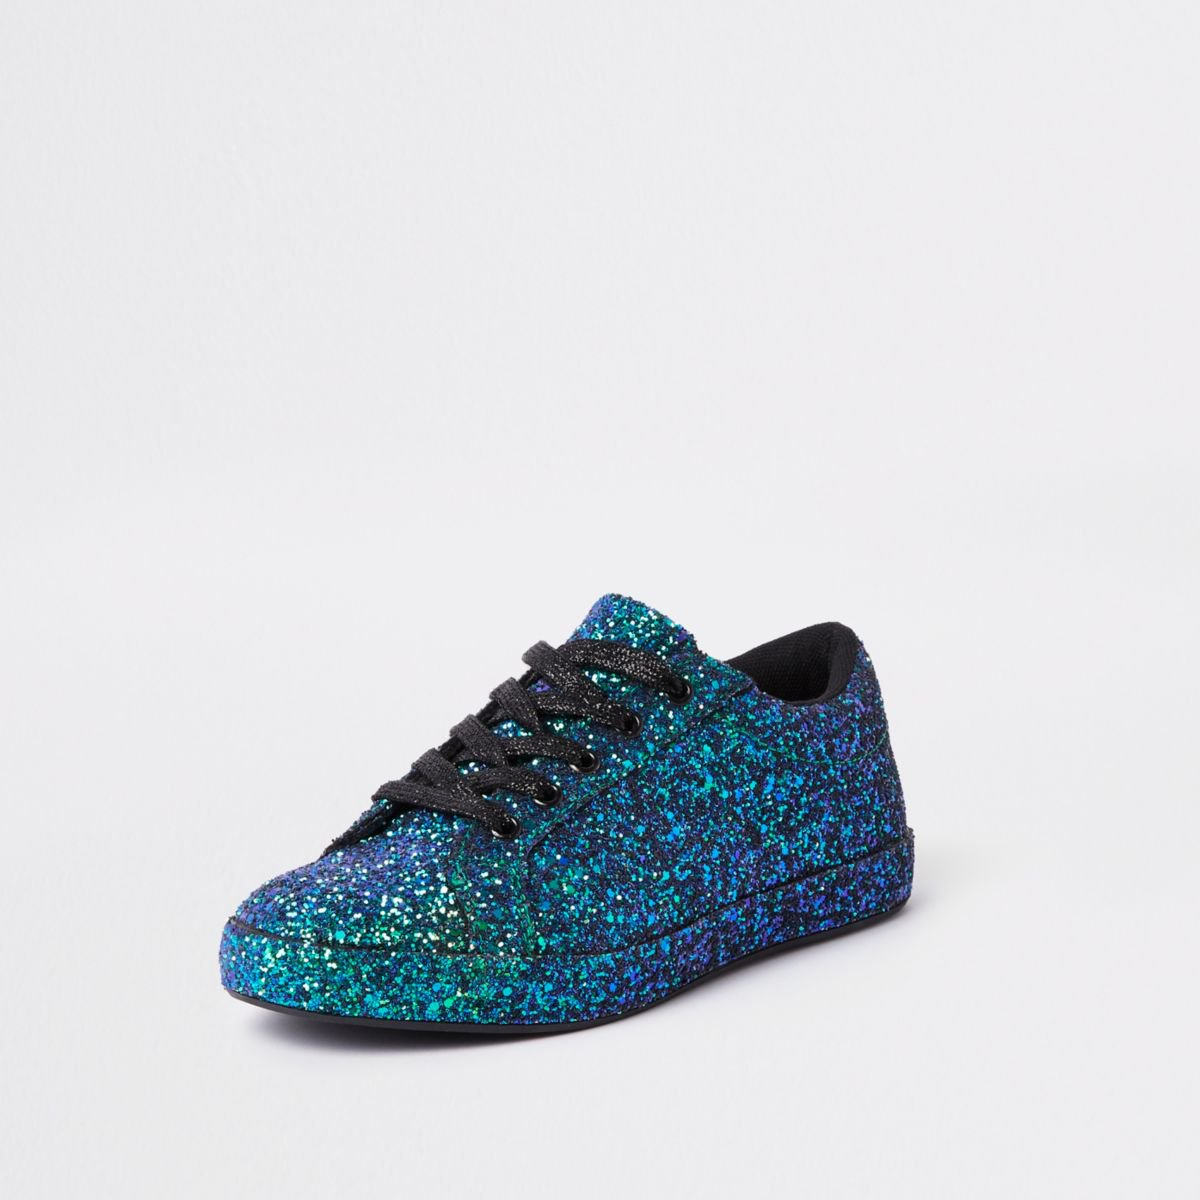 Green glitter lace up trainers - Plimsolls & Trainers - Shoes & Boots - women